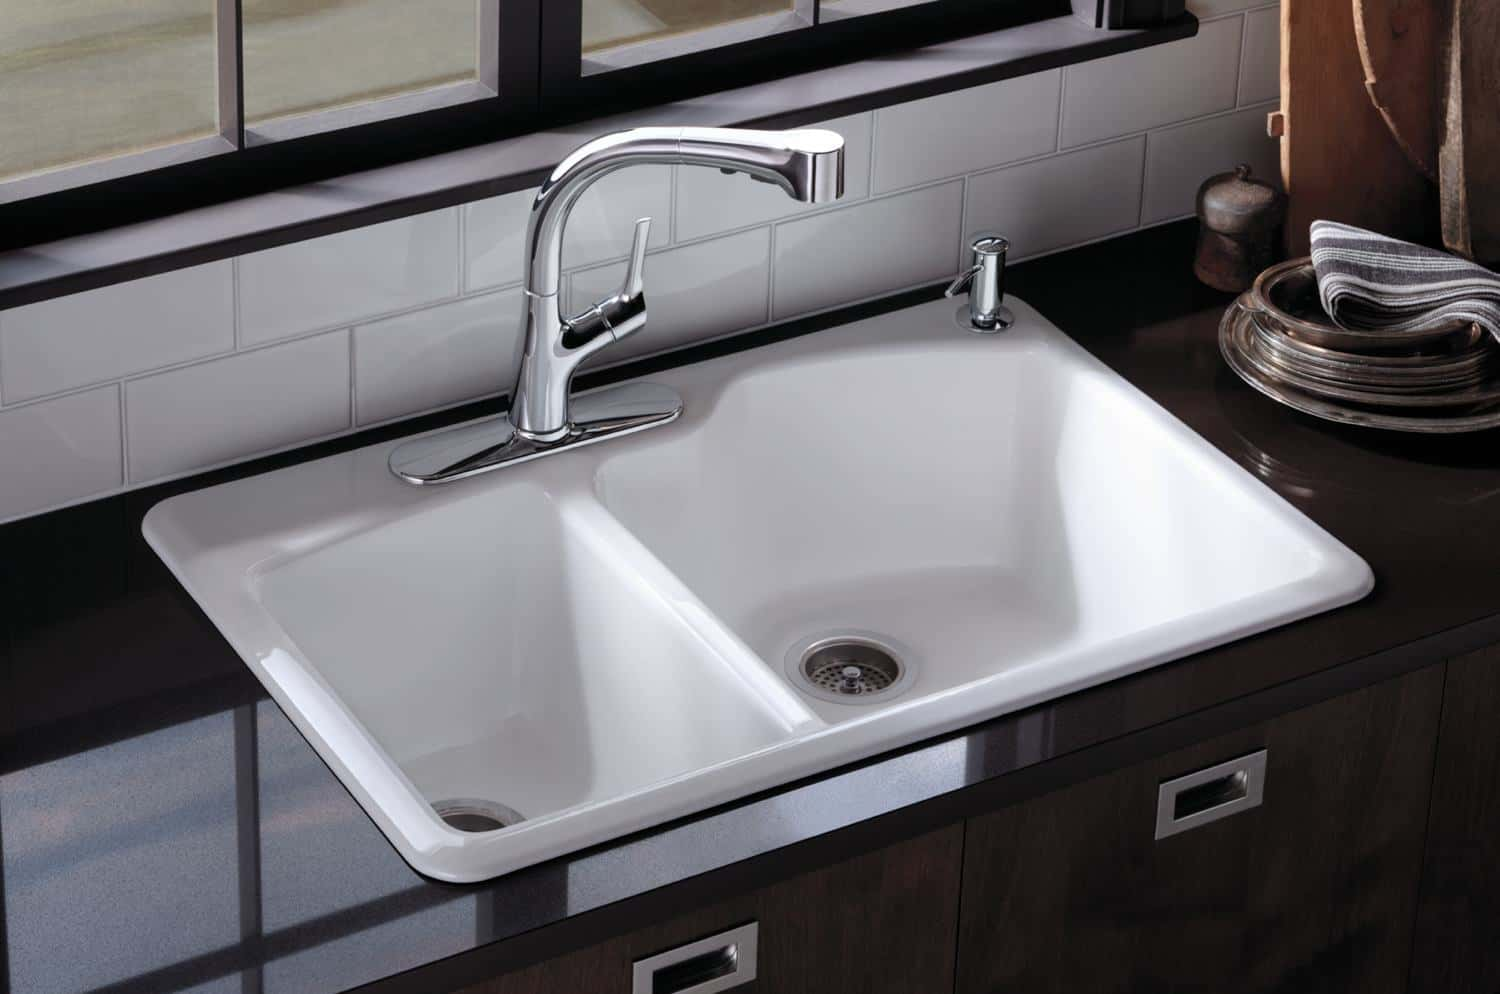 Best Place To Buy A New Kitchen Sink